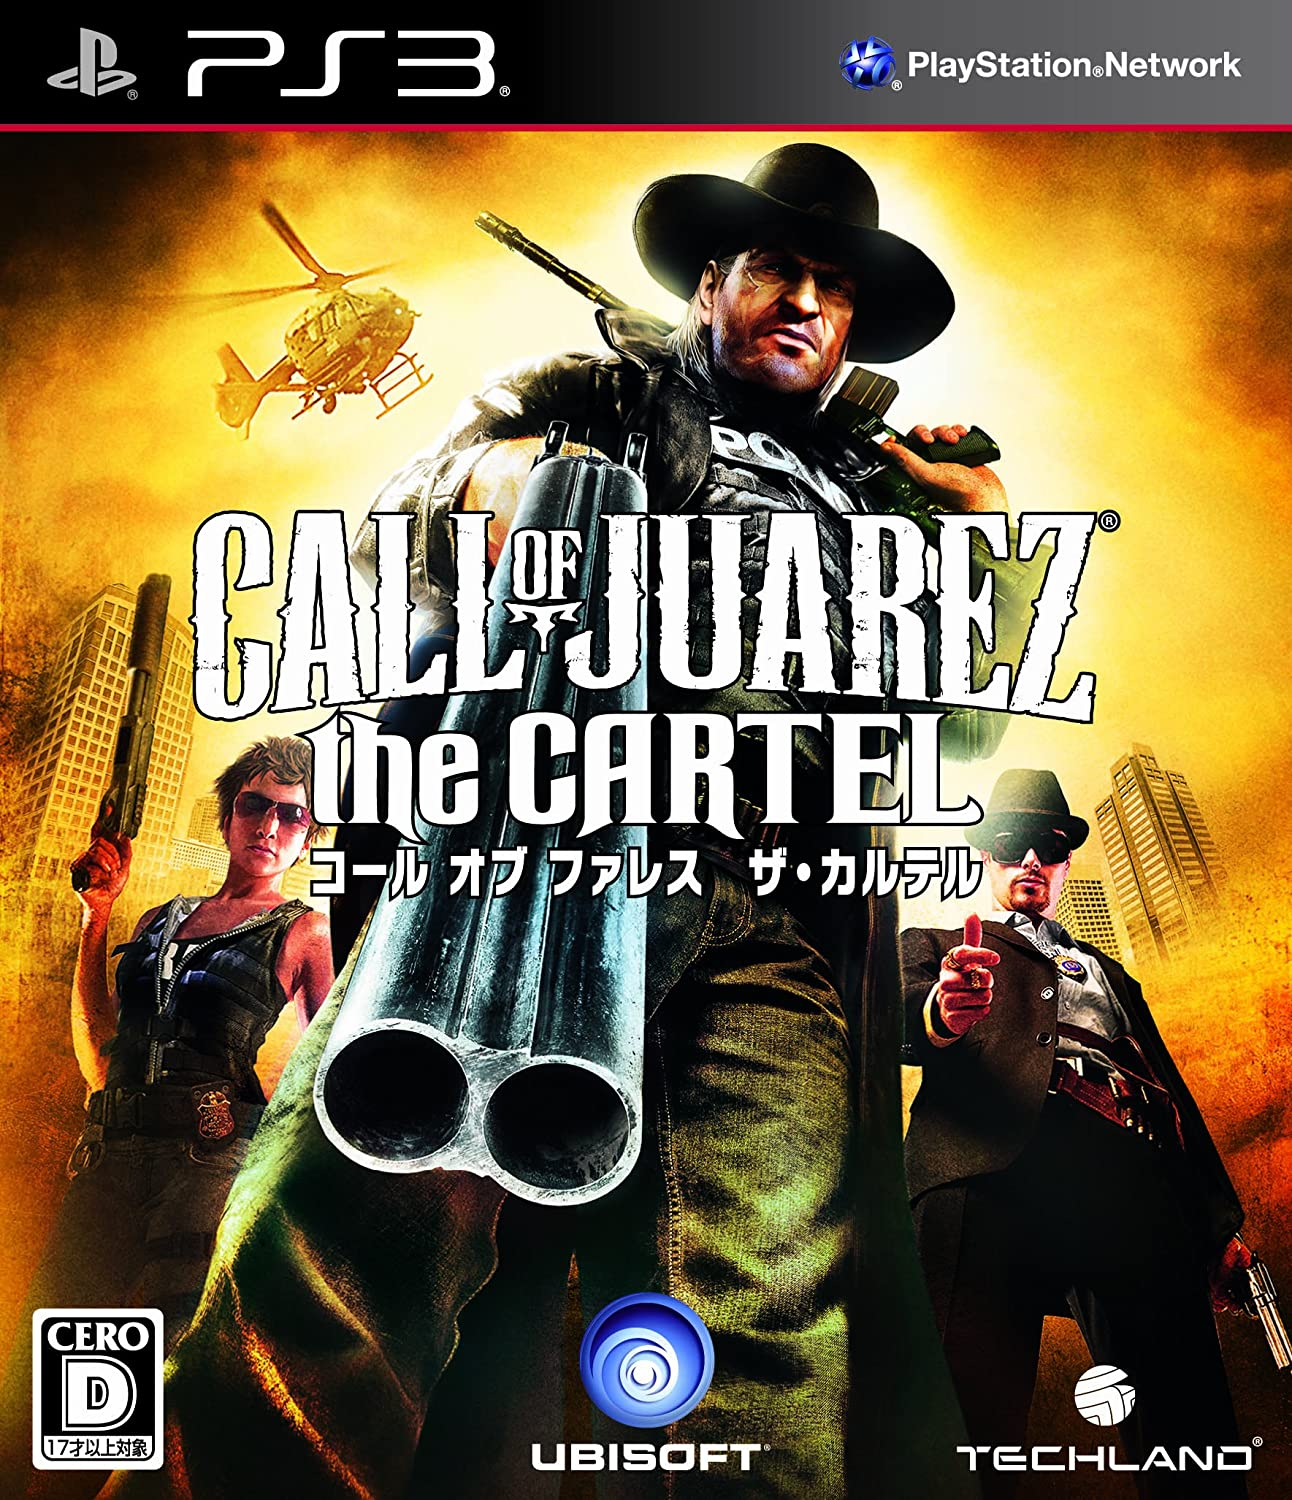 Amazon.com: Call of Juarez: The Cartel [Japan Import]: Video ...